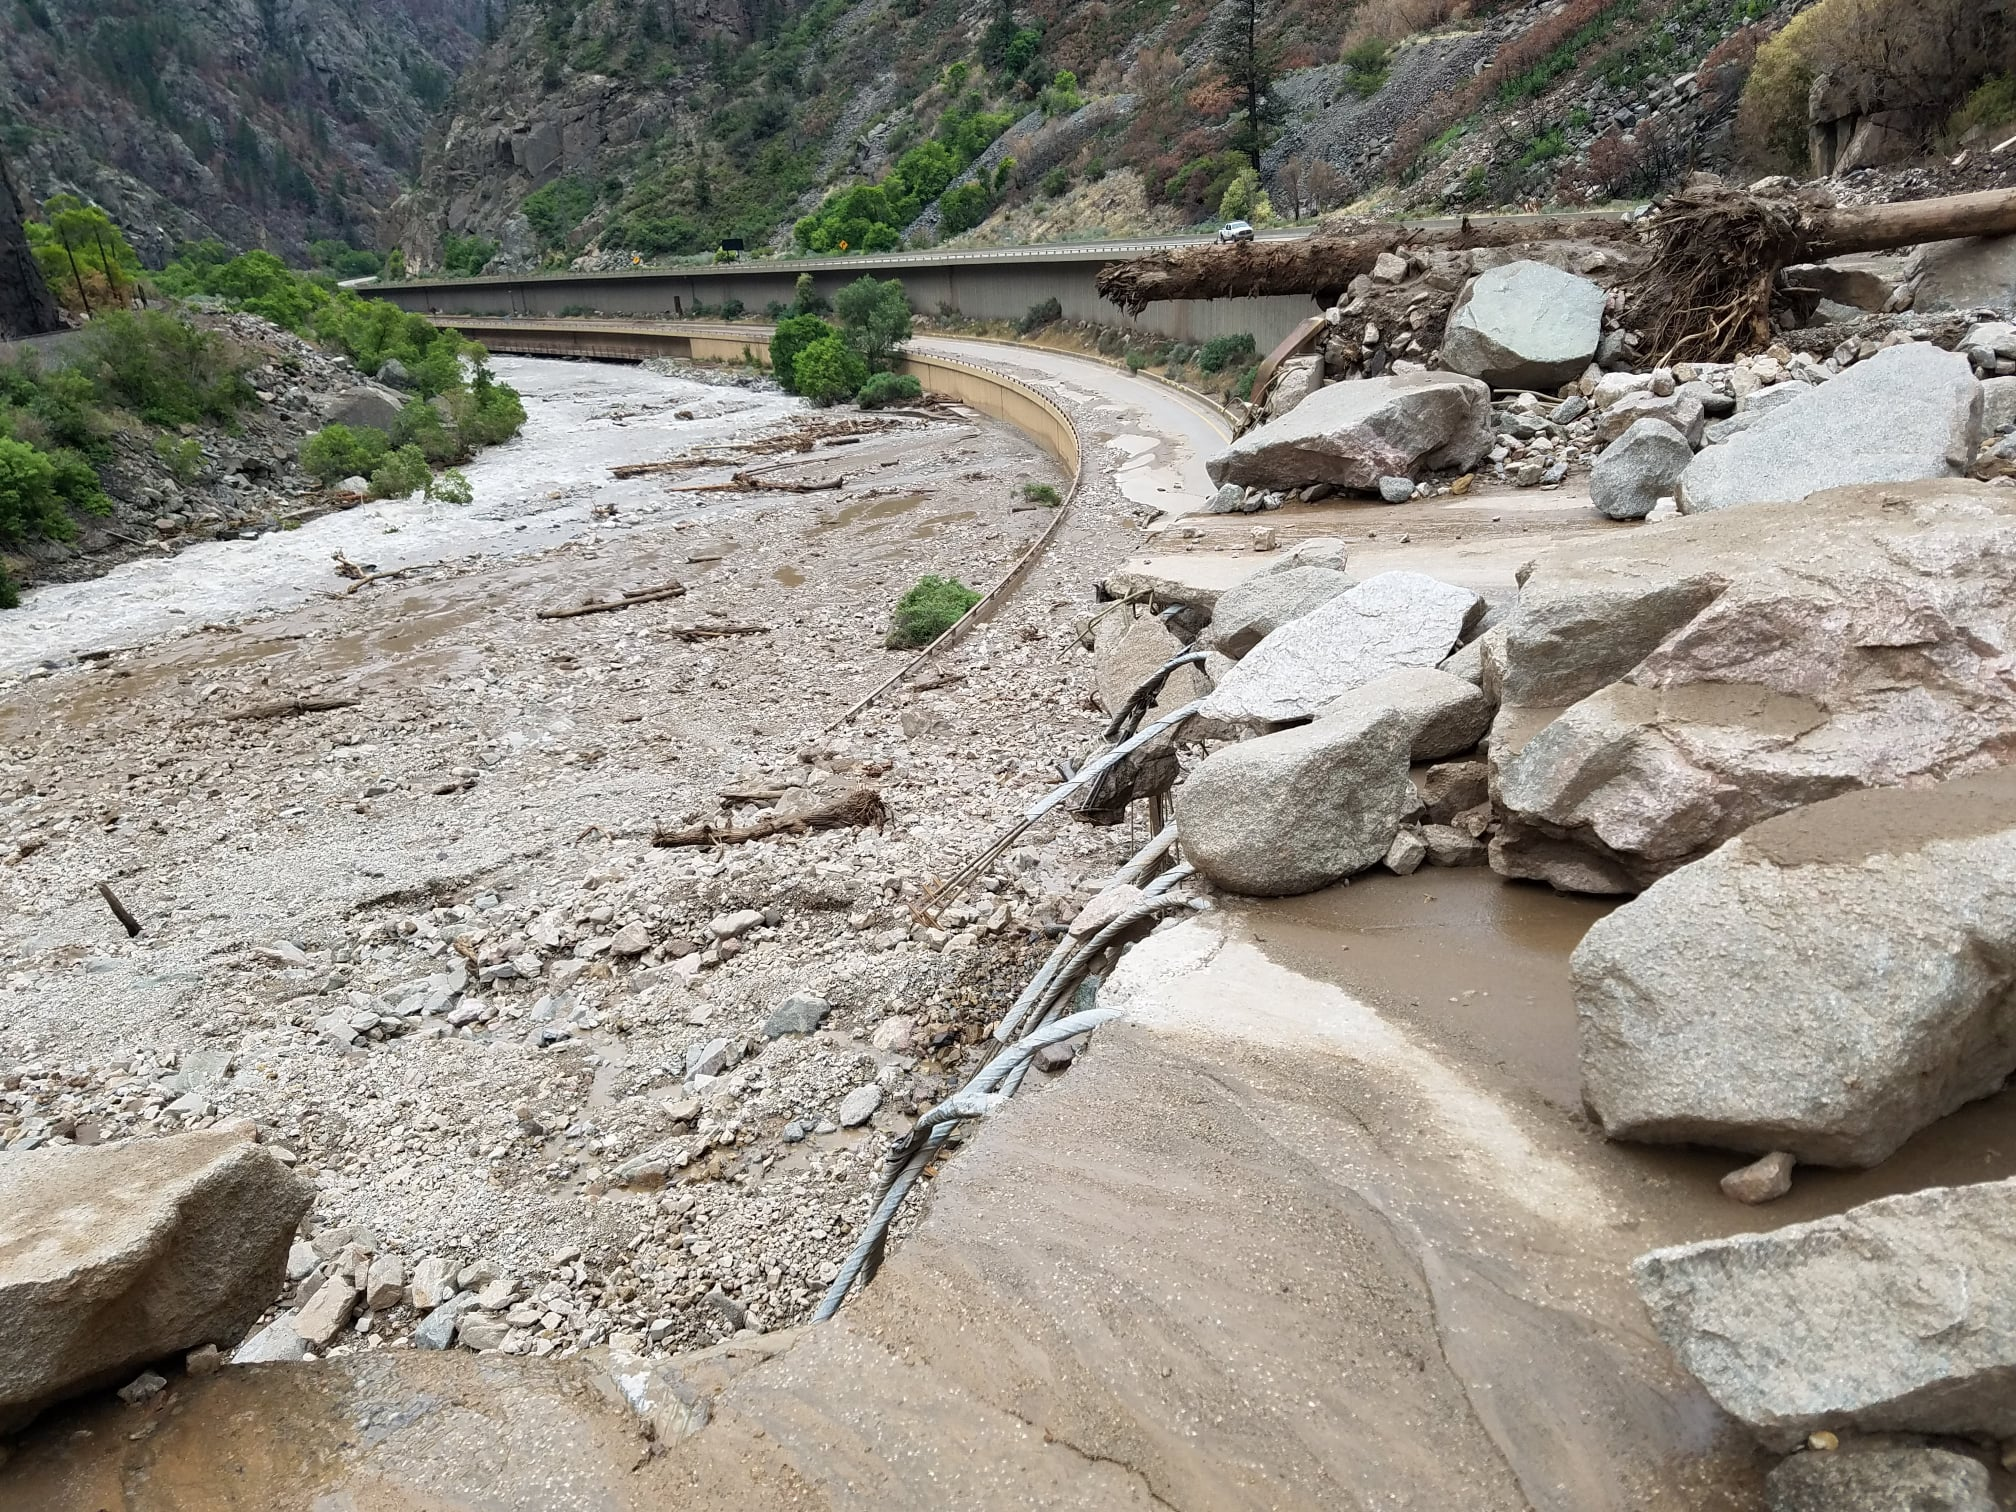 """On Aug. 1, transportation officials announced that Glenwood Canyon through I-70 has suffered """"extreme damage"""" from recent mudslides and will remain closed for days, if not weeks. On July 29, more than 100 people were trapped in one such mudslide, spurred by a torrential downpour that brought a deluge of rocks, logs and mud onto the highway."""